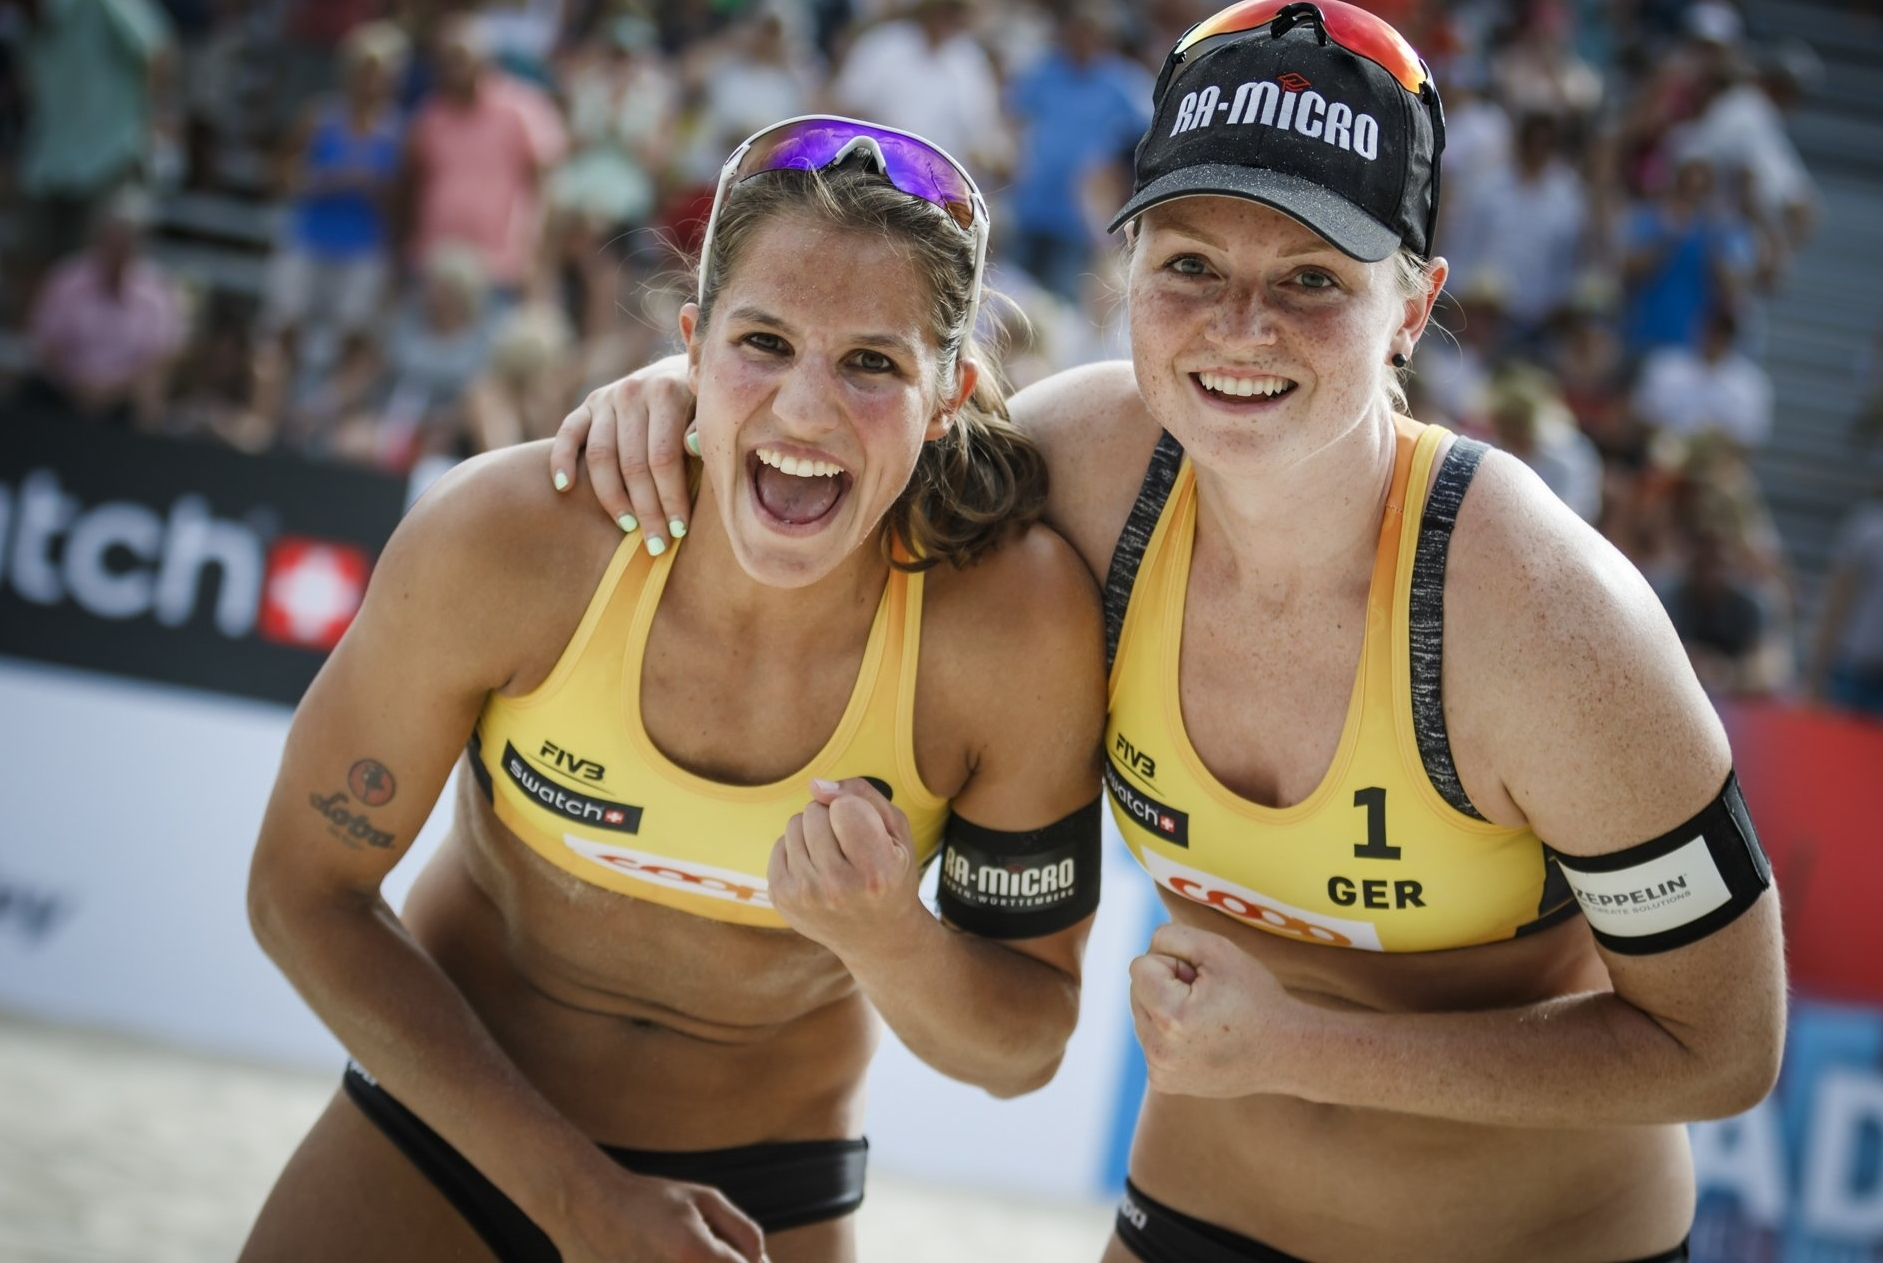 Chantal Laboureur and Julia Sude are in the Gstaad Major final